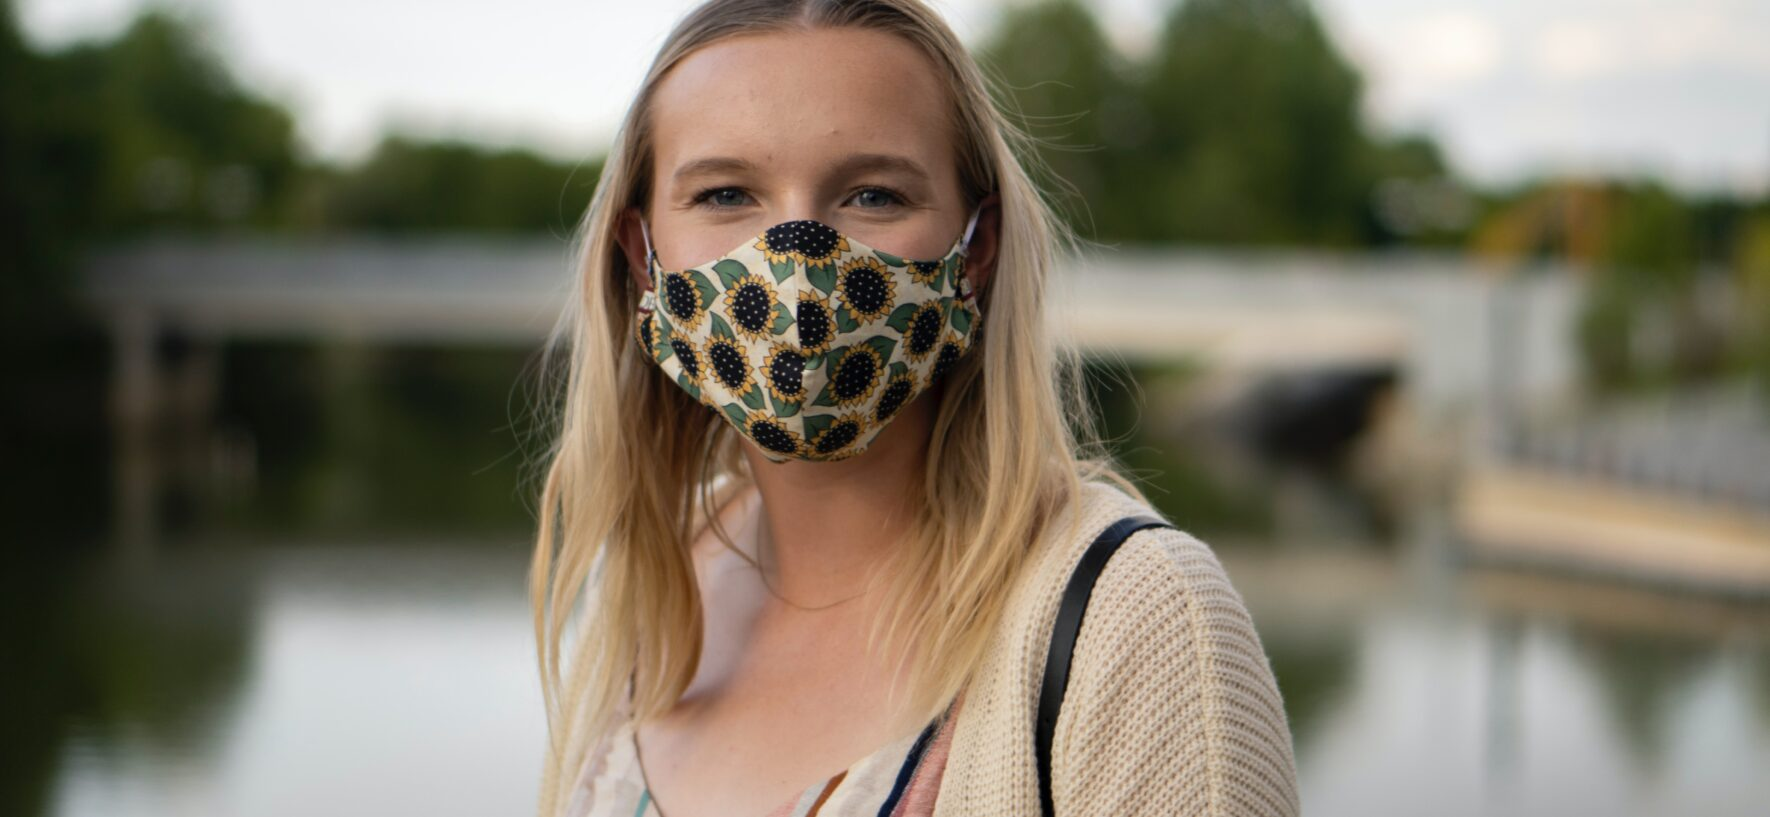 How to Keep Your Makeup From Transferring Onto Your Mask